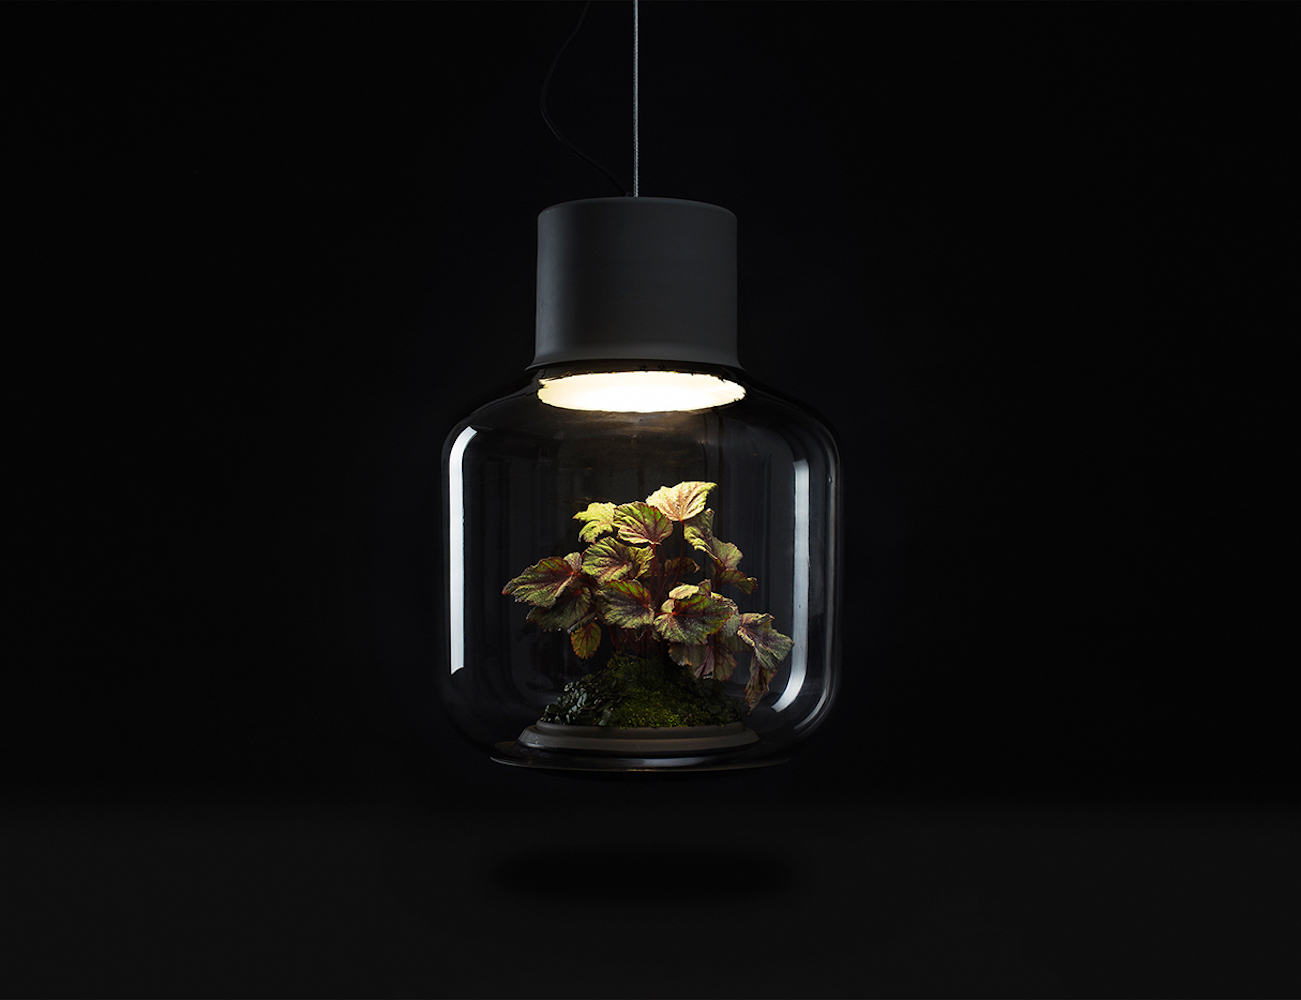 Lamp Mygdal by Nui Studio